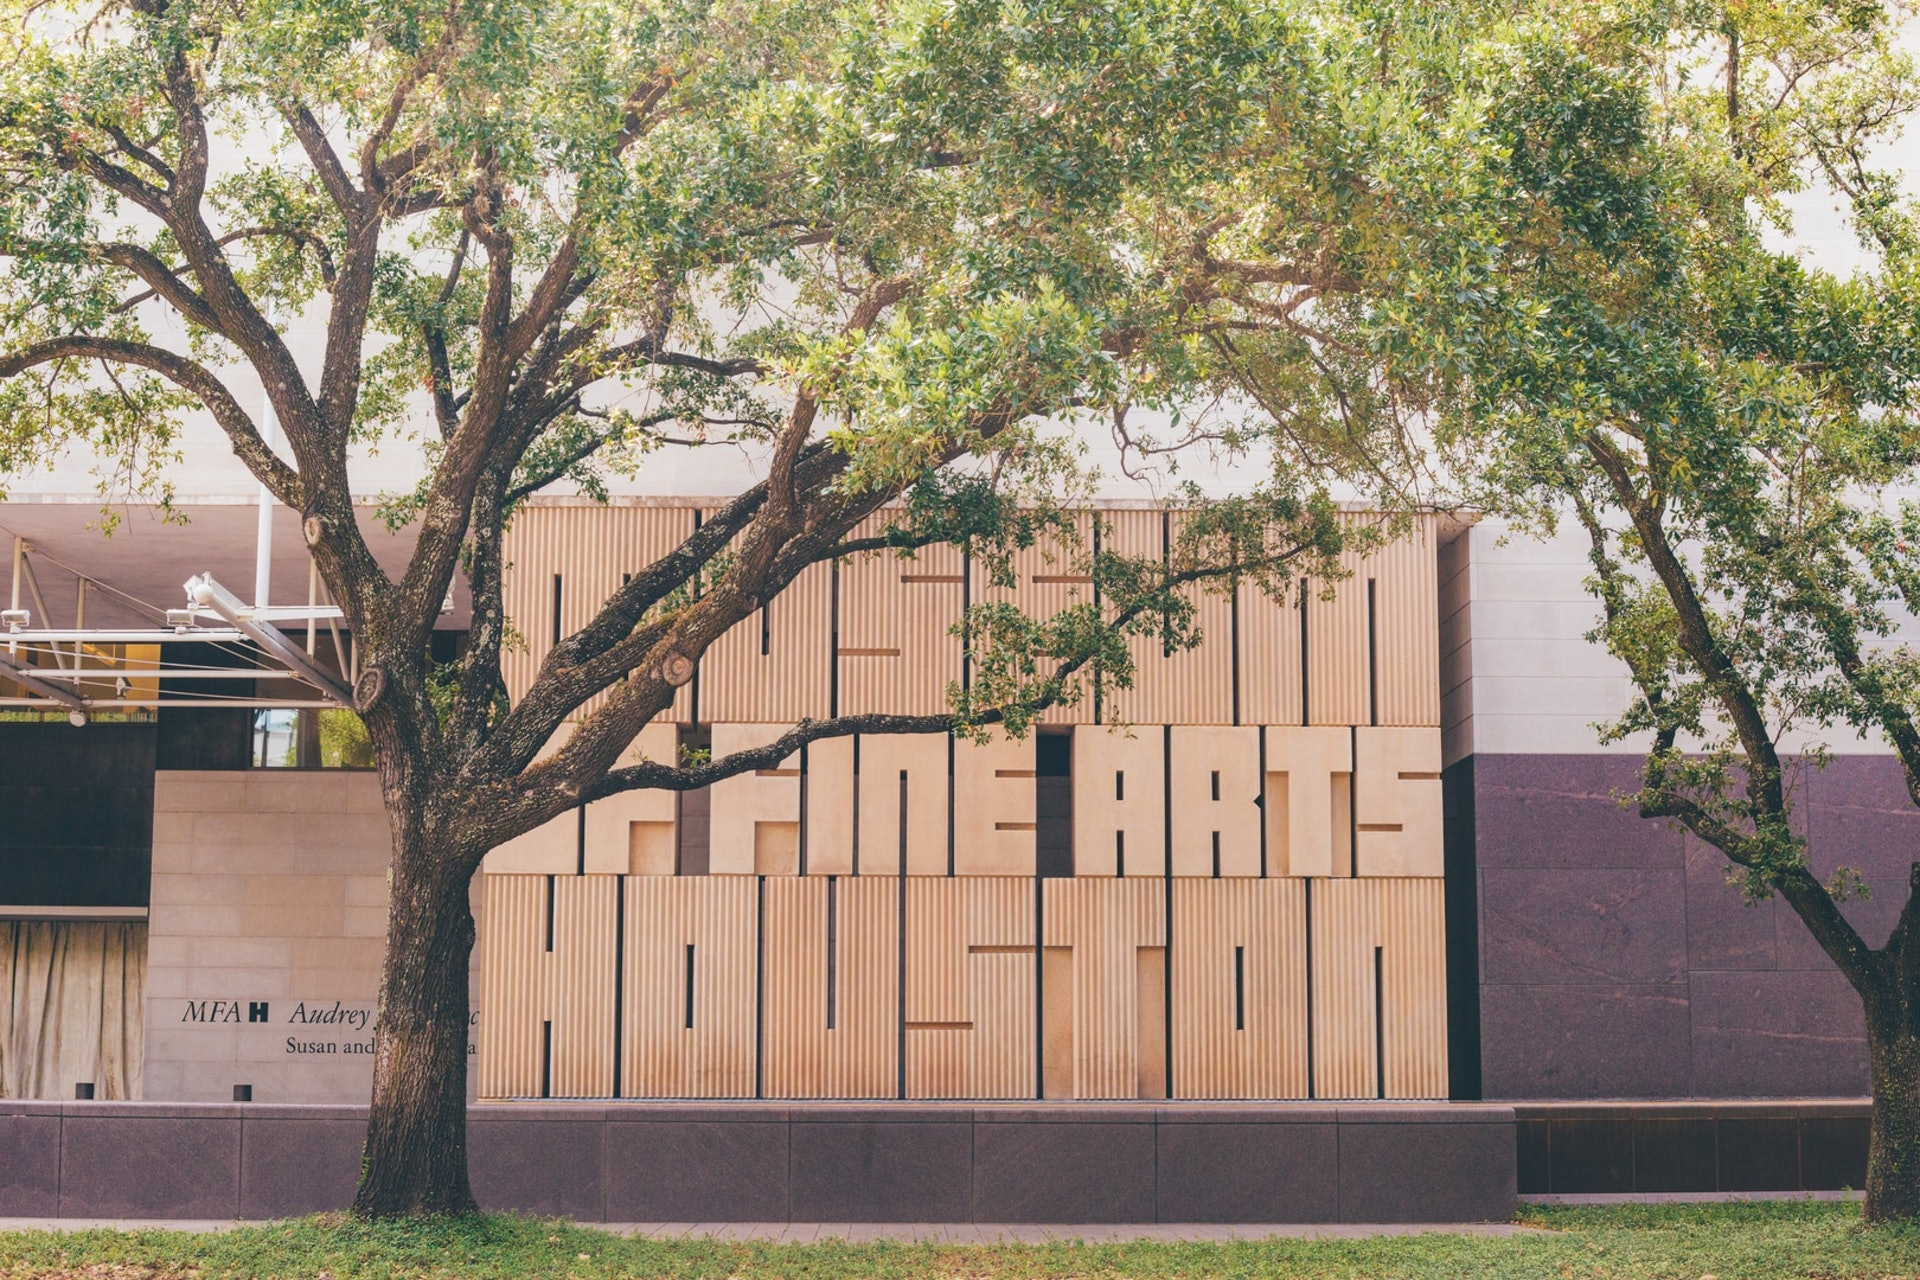 Sculpture outside The Museum of Fine Arts, Houston